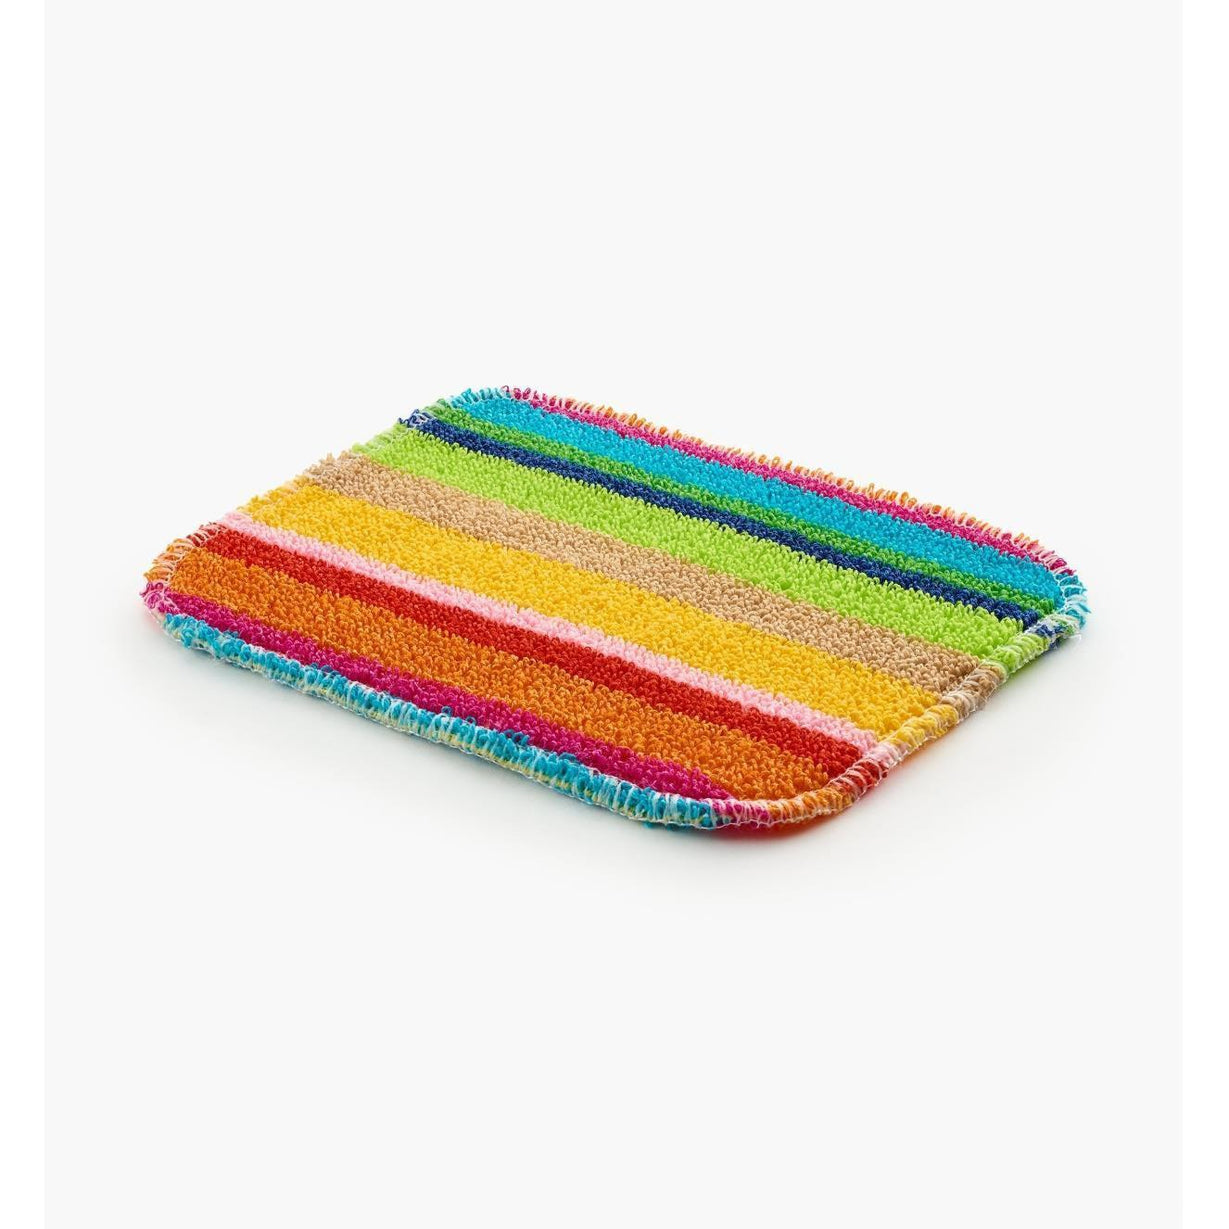 Euro Scrubby -  Multi Purpose Cleaning Pad (1)